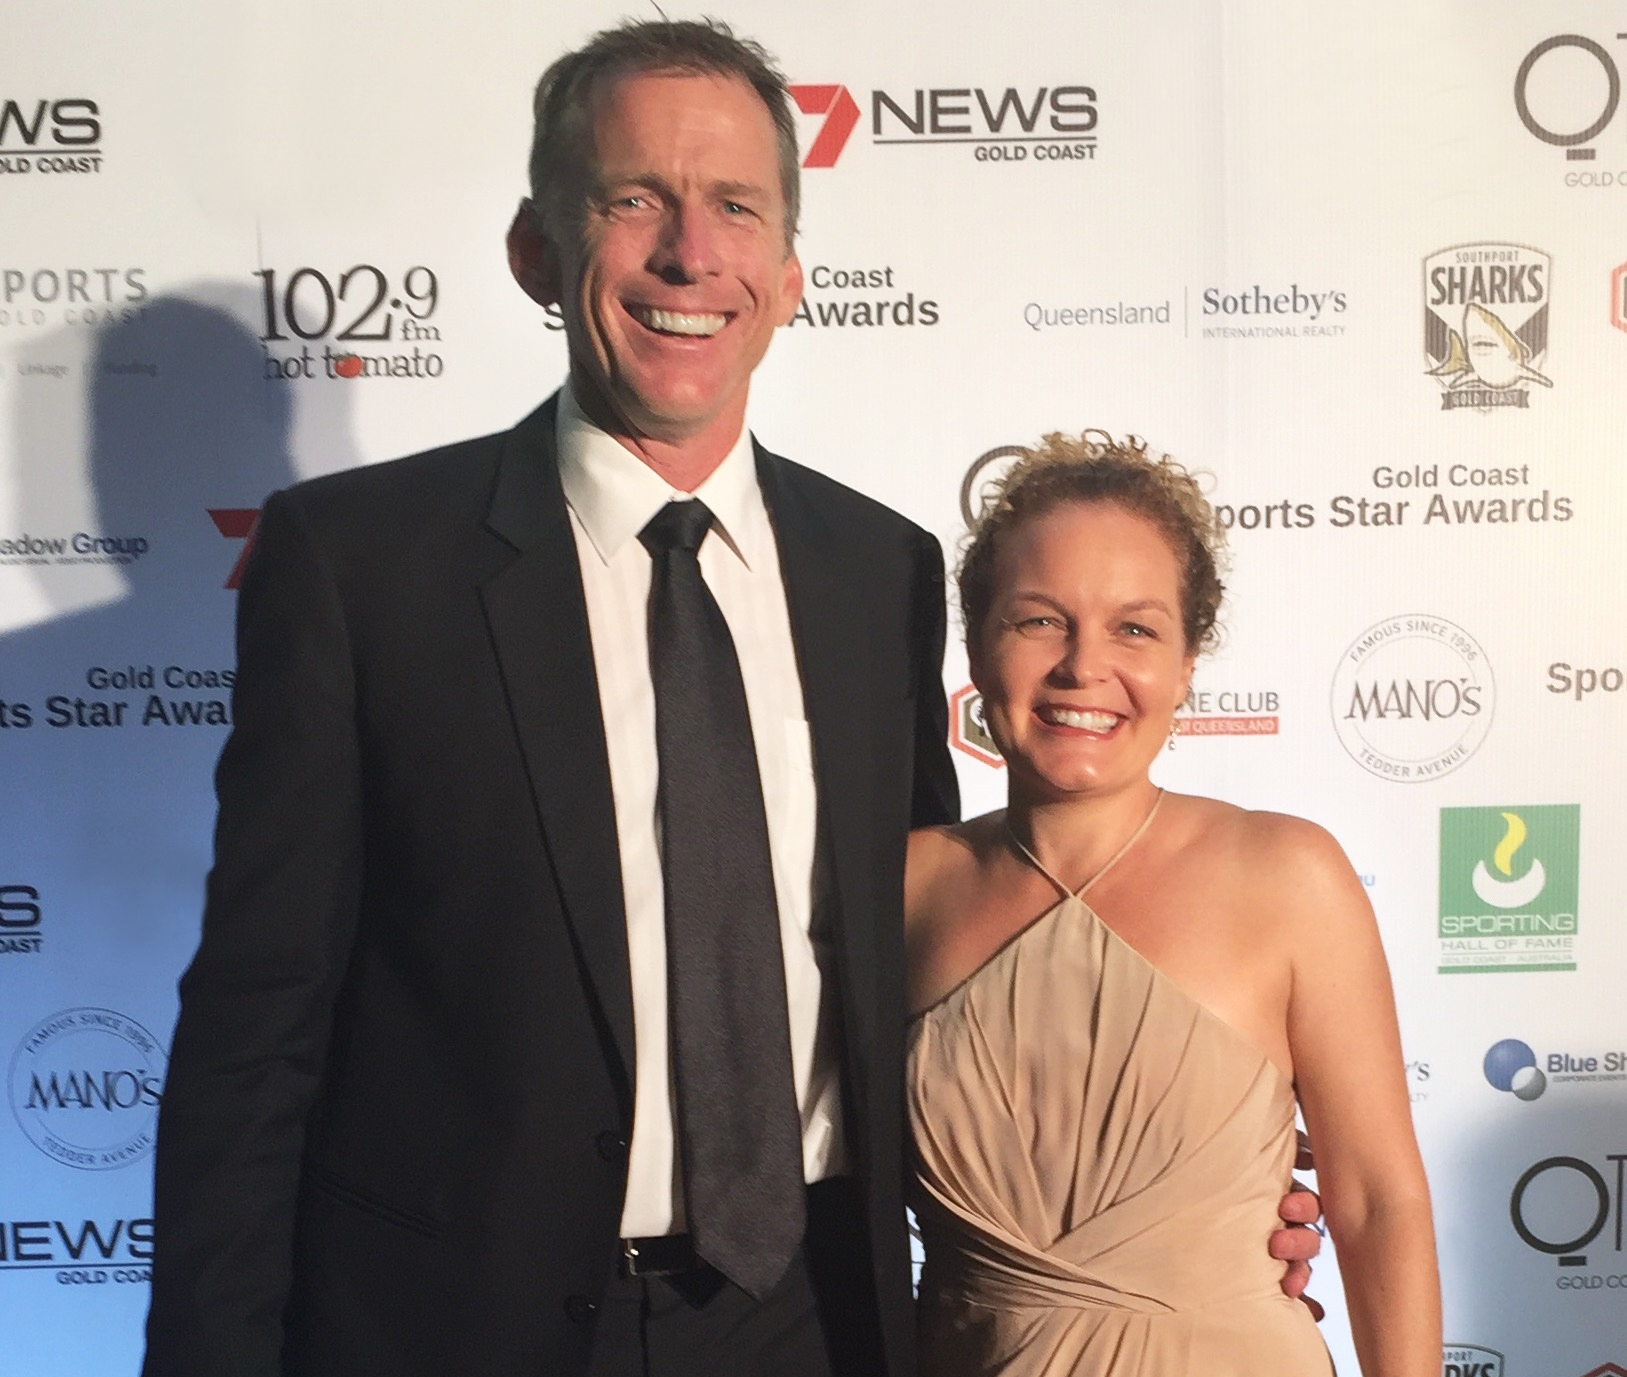 Director of Griffith Sports College, Duncan Free, pictured with his wife Belinda after he was inducted into the Gold Coast Sporting Hall of Fame.